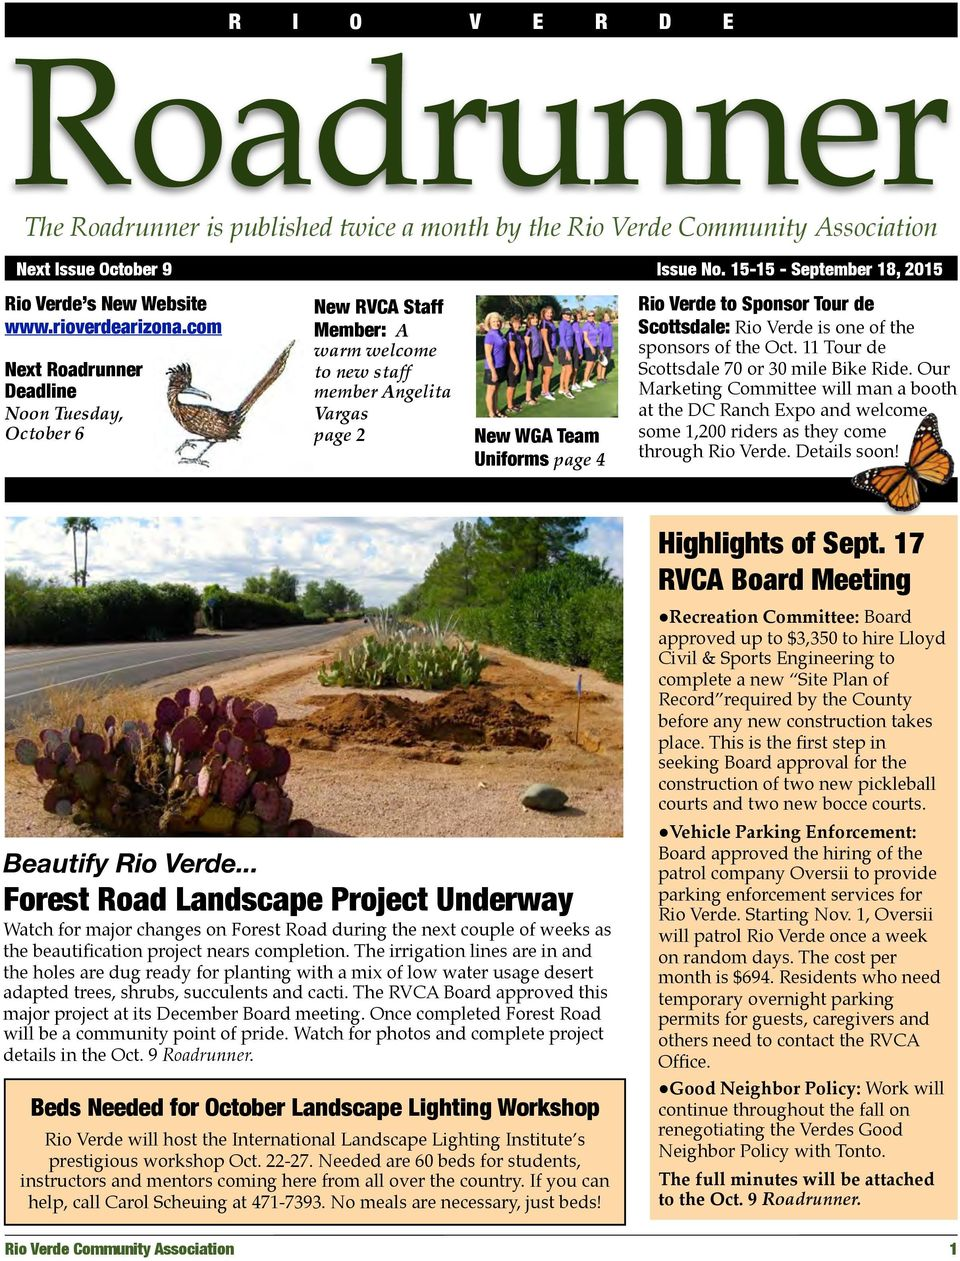 Roadrunner  Highlights of Sept  17 RVCA Board Meeting  The